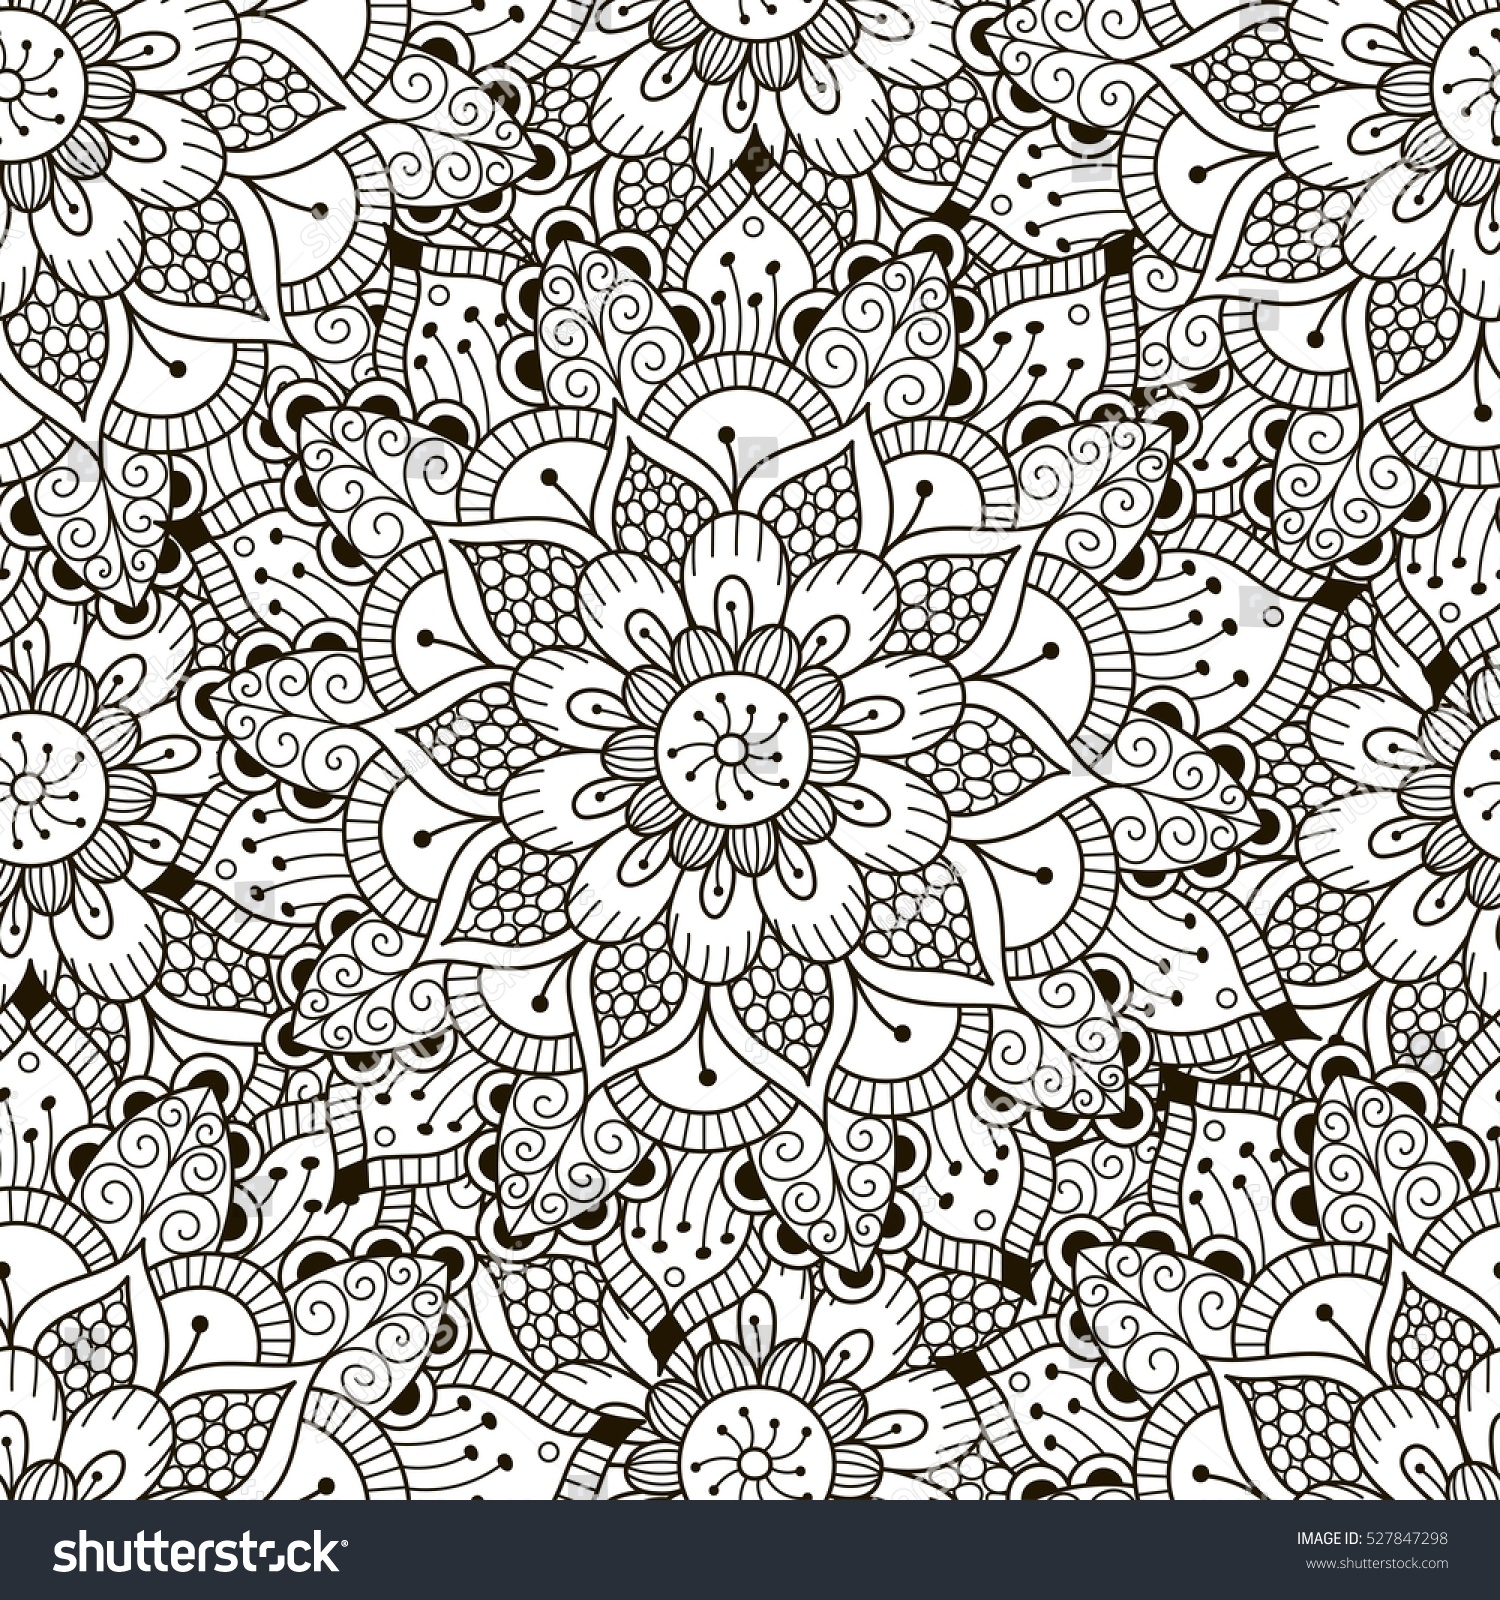 Floral Ornament Seamless Pattern Coloring Pages Stock Vector ...